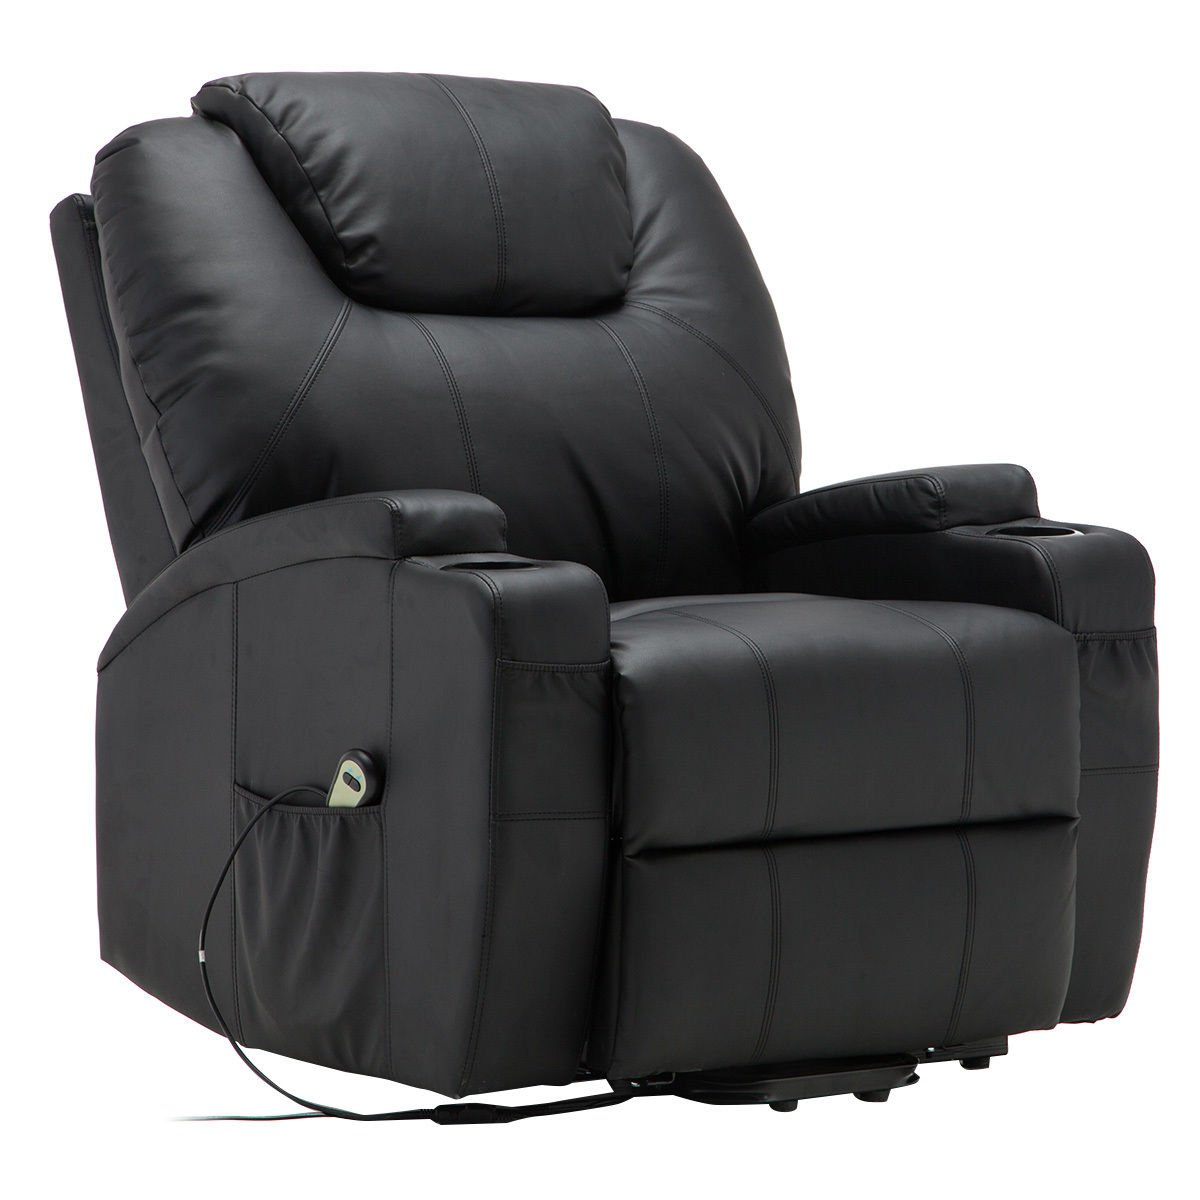 Amazon.com : Electric Lift Power Recliner Chair Heated Massage Sofa Lounge  With Remote Control : Sports U0026 Outdoors